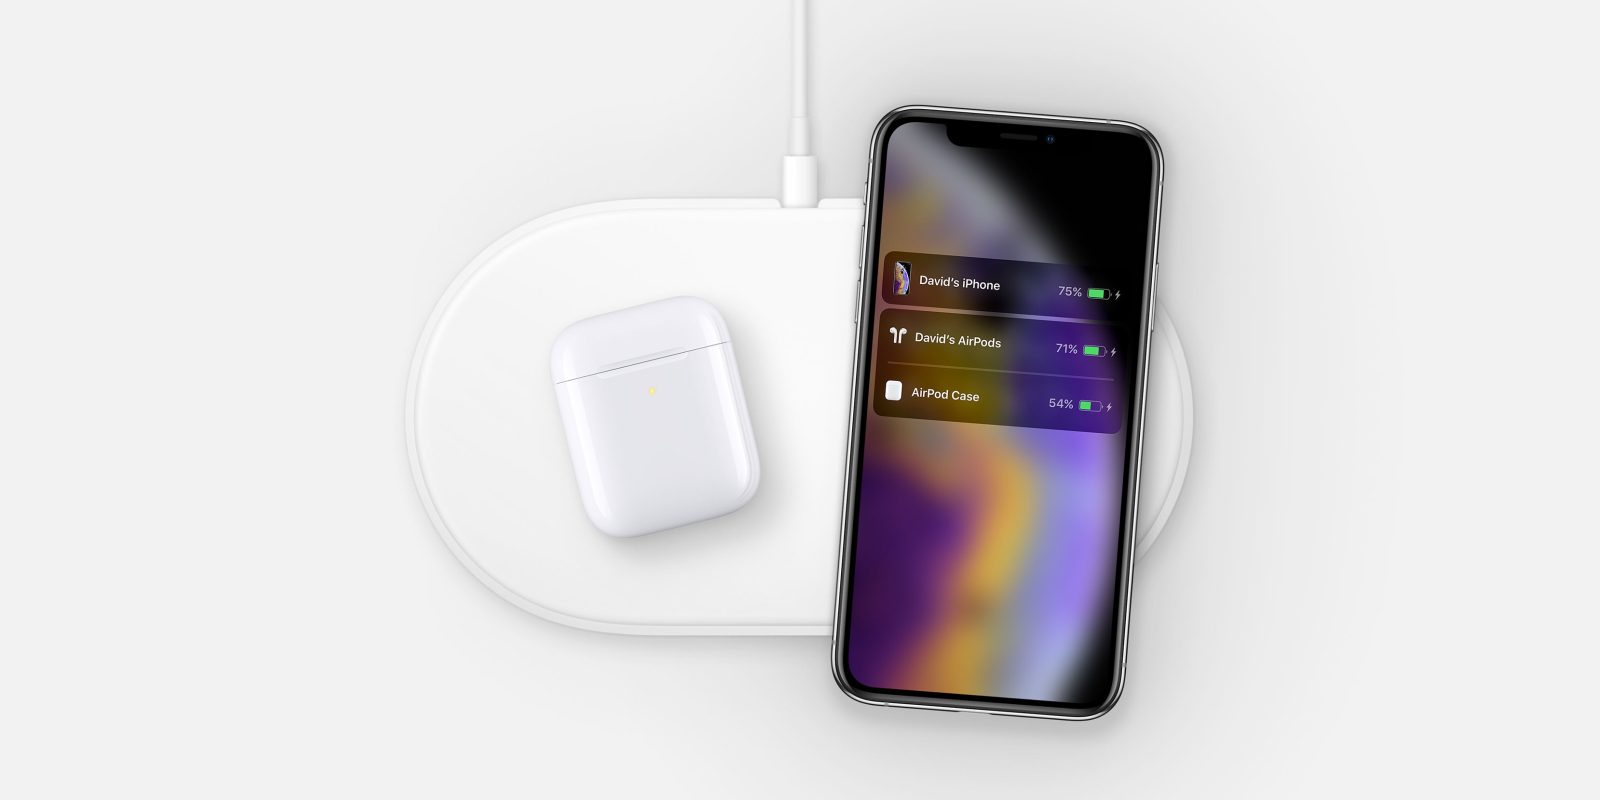 Hidden AirPower image with iPhone XS and new AirPods discovered on